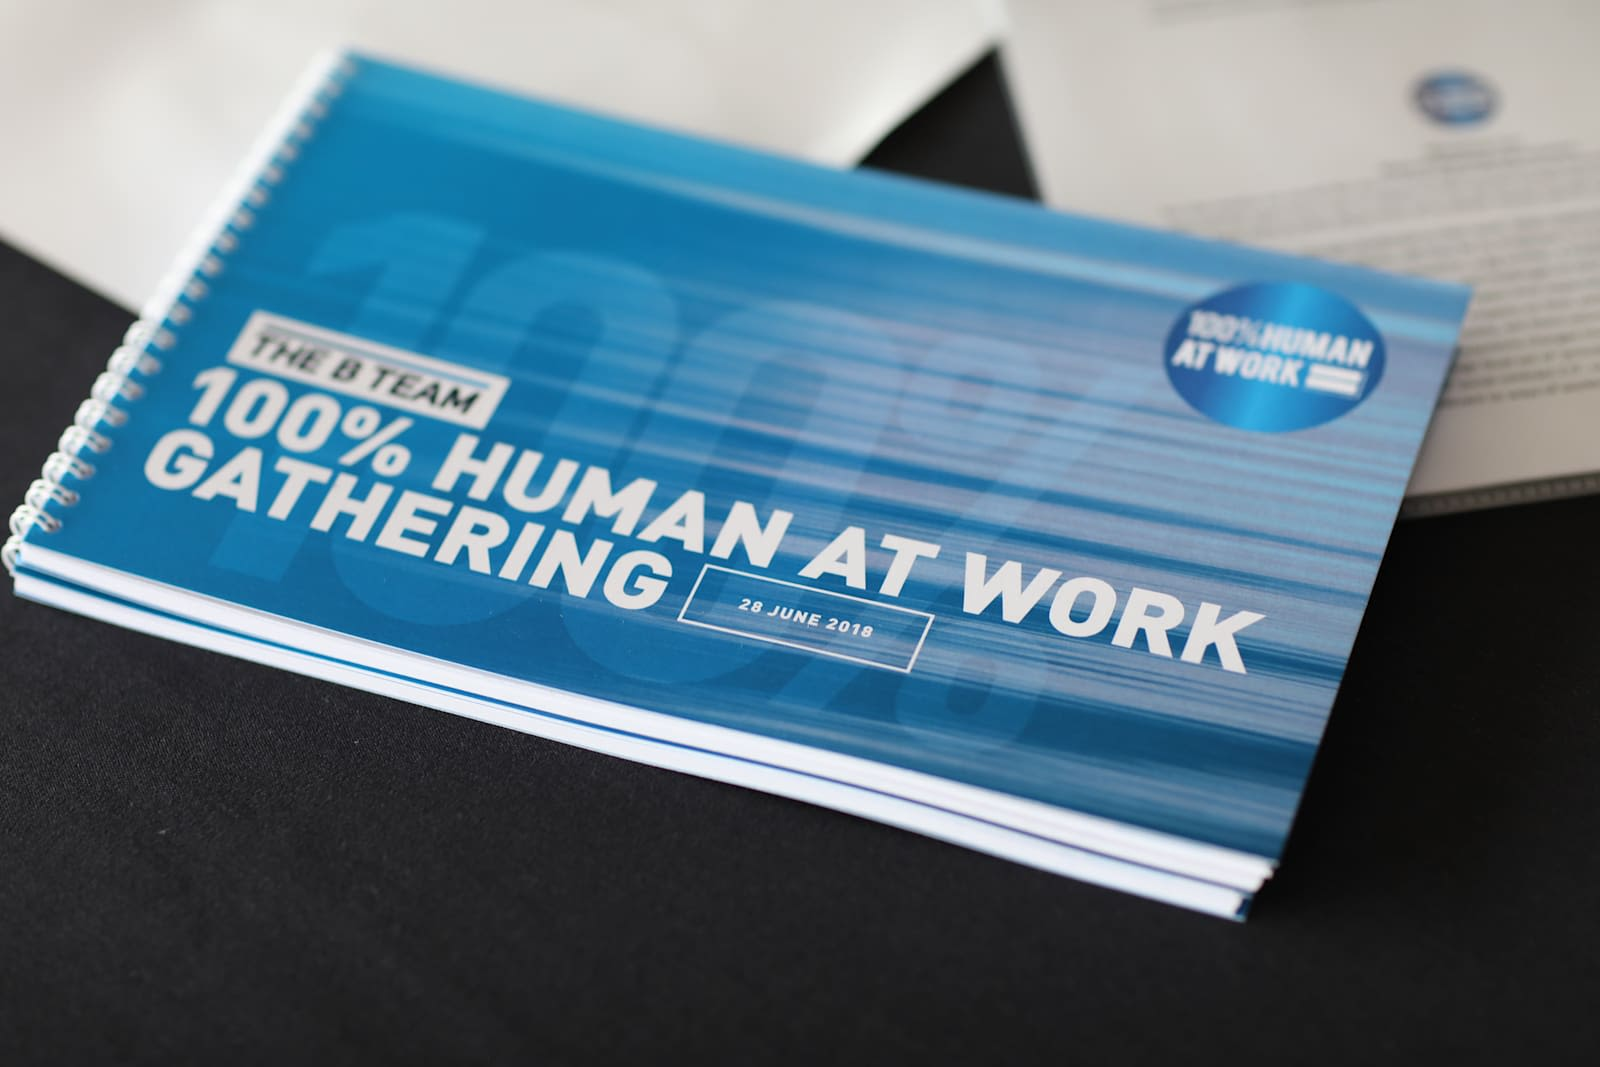 A 100% Human at Work event brochure